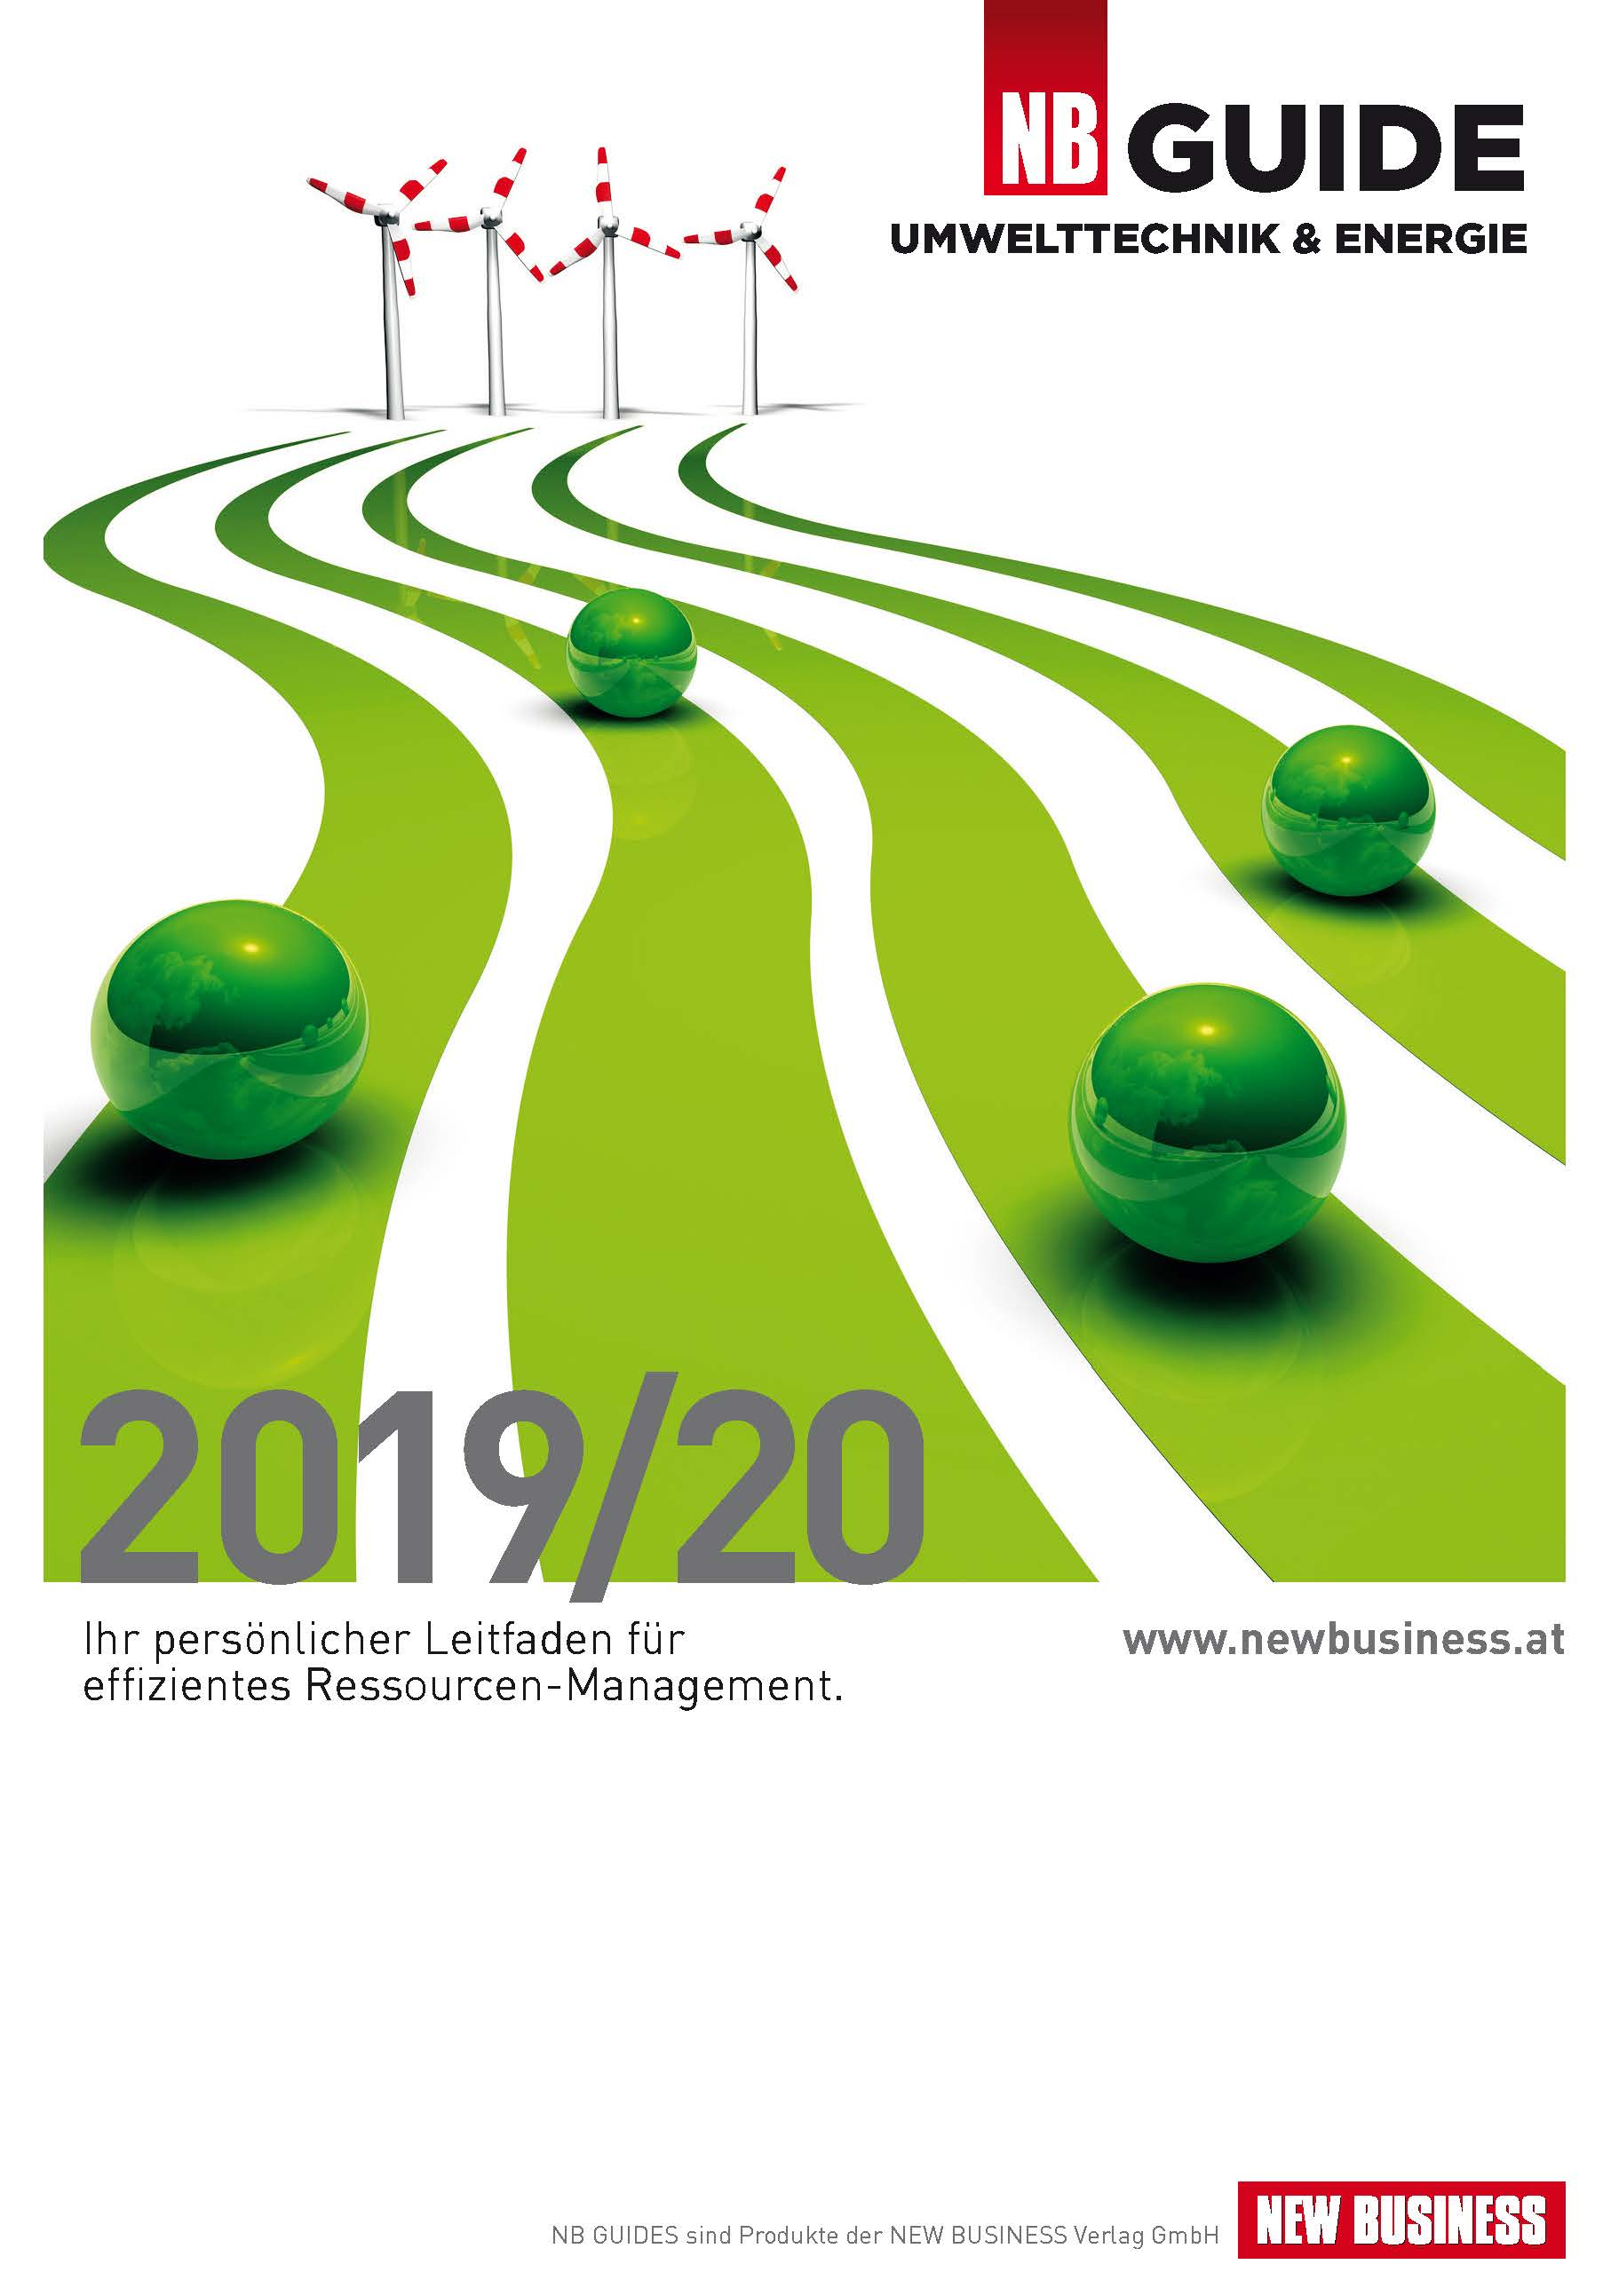 Cover: NEW BUSINESS Guides - UMWELTTECHNIK- & ENERGIE-GUIDE 2019/20